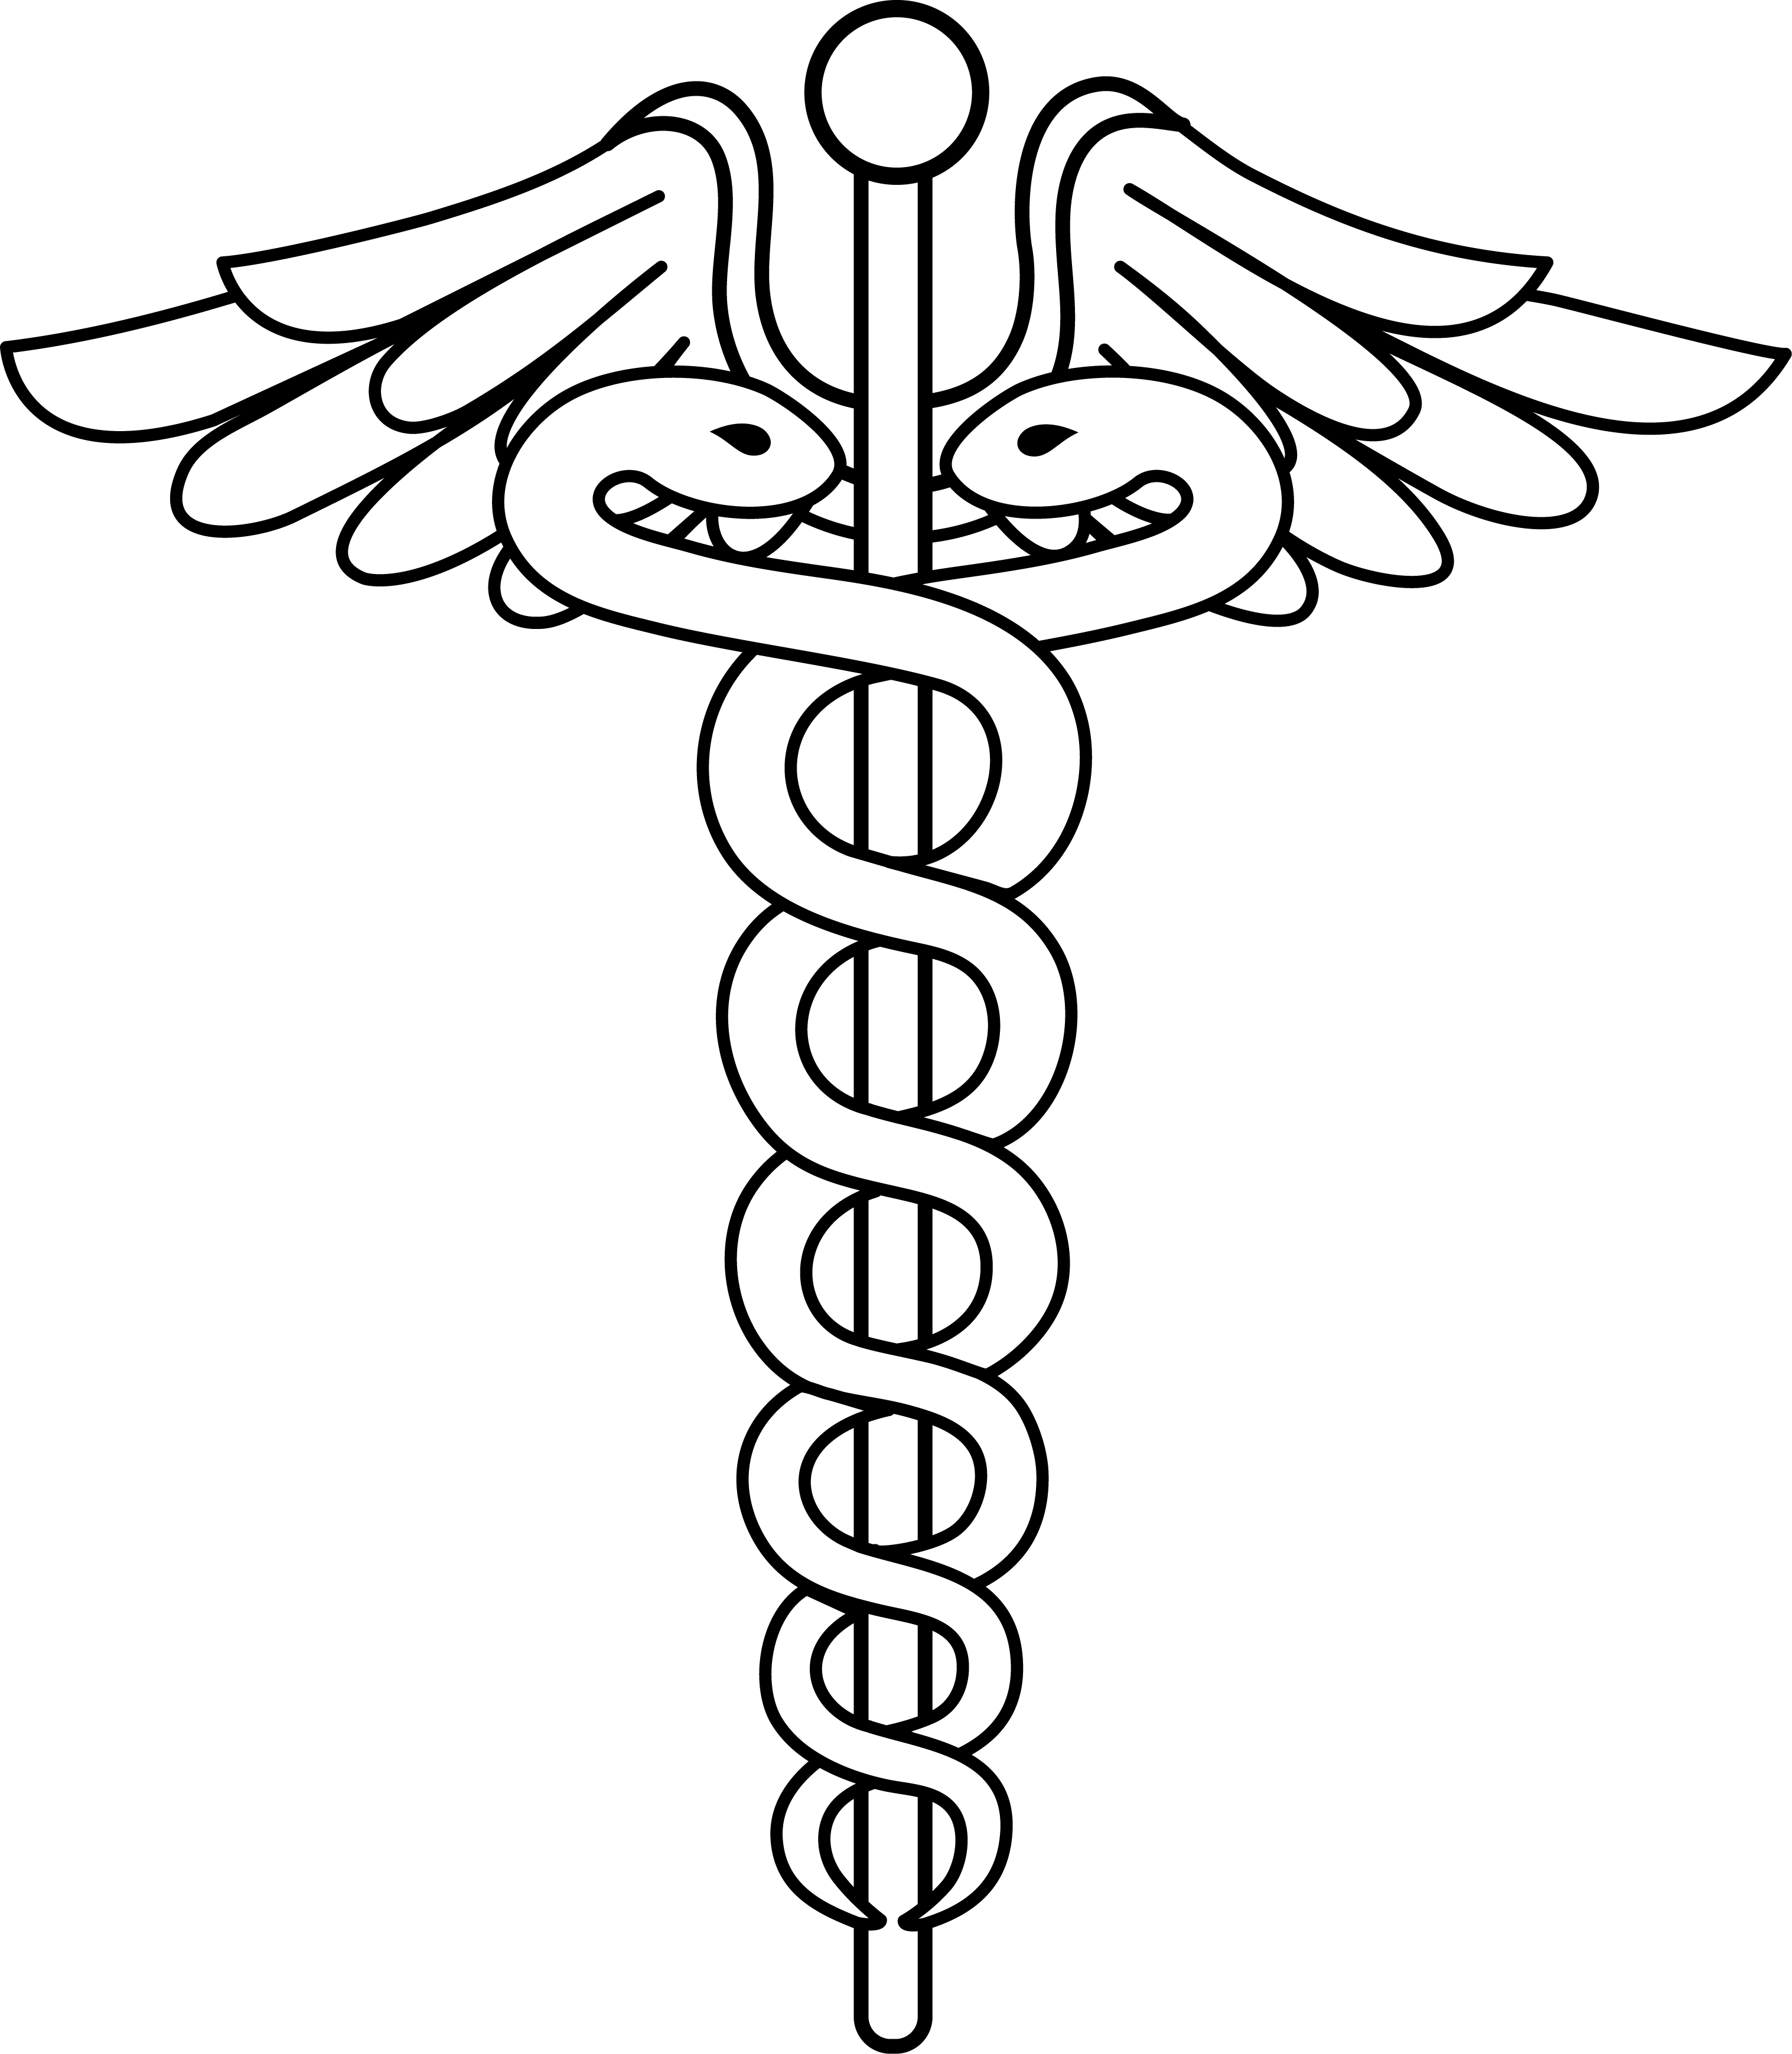 Pro med ambulance logo clipart black and white clip transparent library Free Medical Doctor Logo, Download Free Clip Art, Free Clip ... clip transparent library